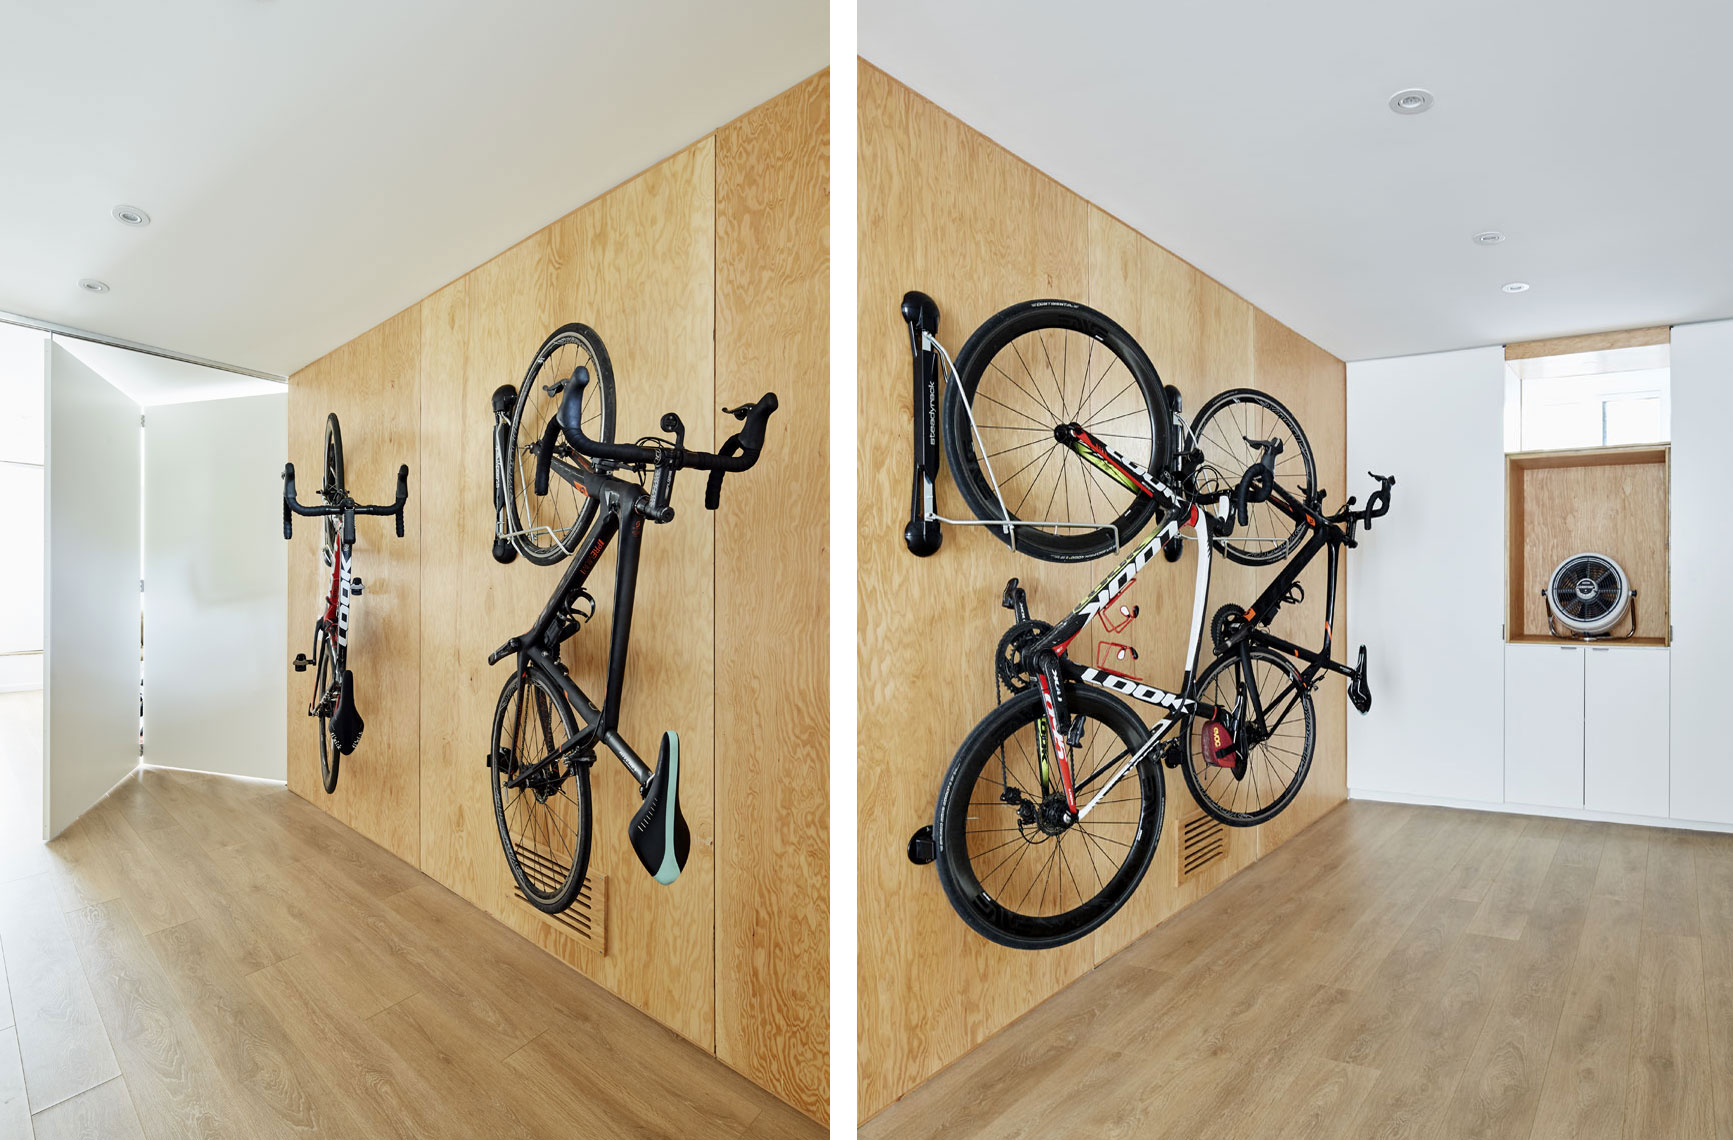 Architecture-Toronto-NovaTayona-Bike-Room